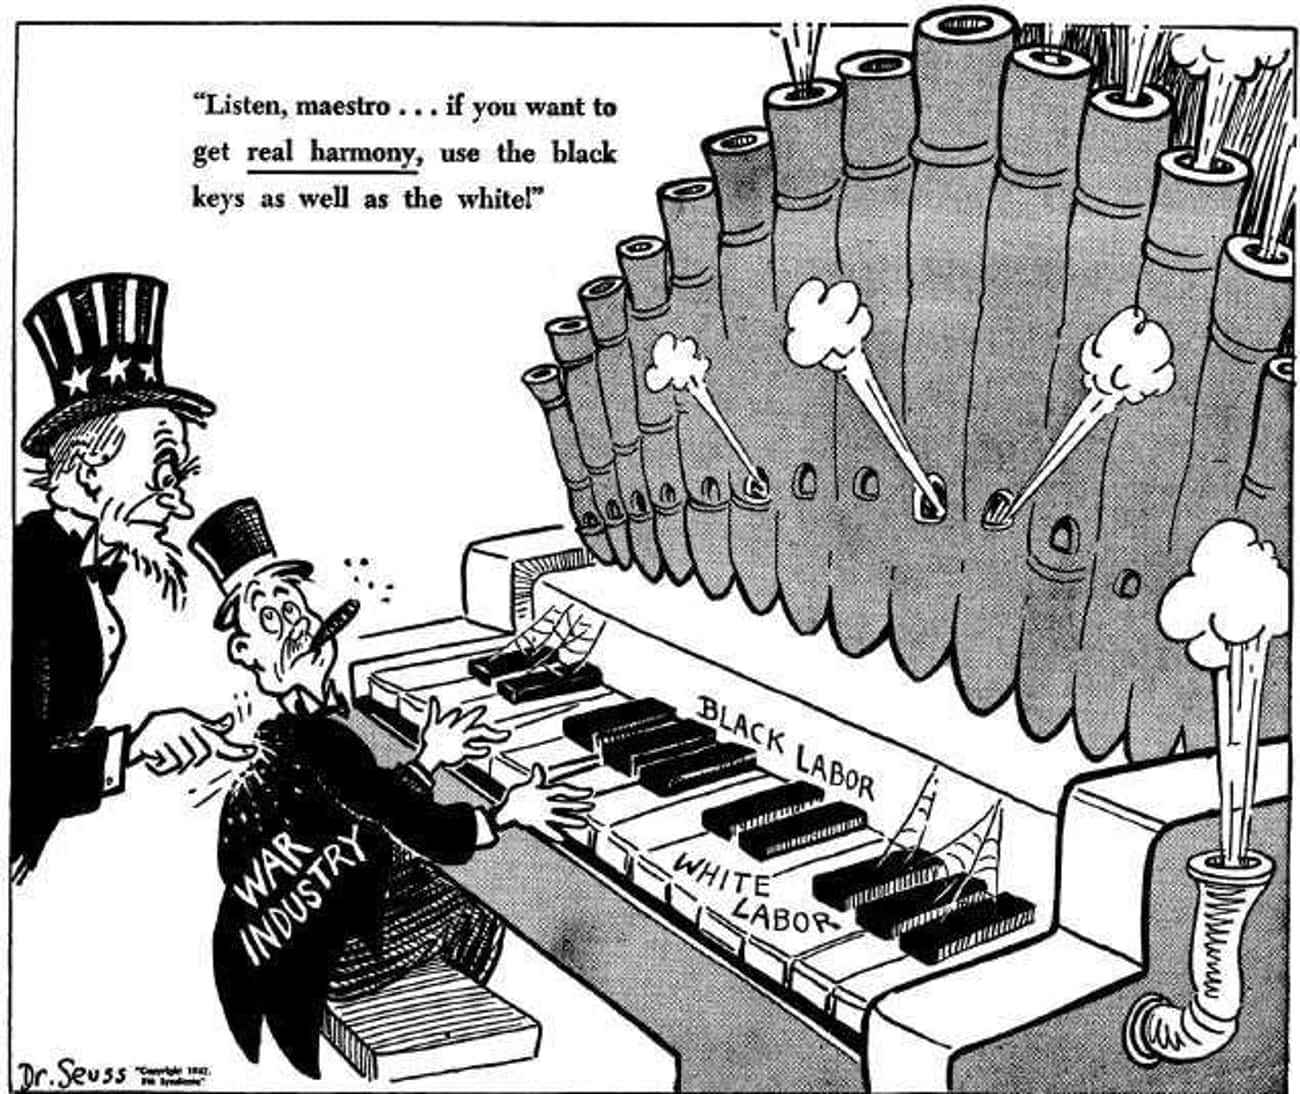 Dr. Seuss Made A Habit Of Creating Racist Cartoons